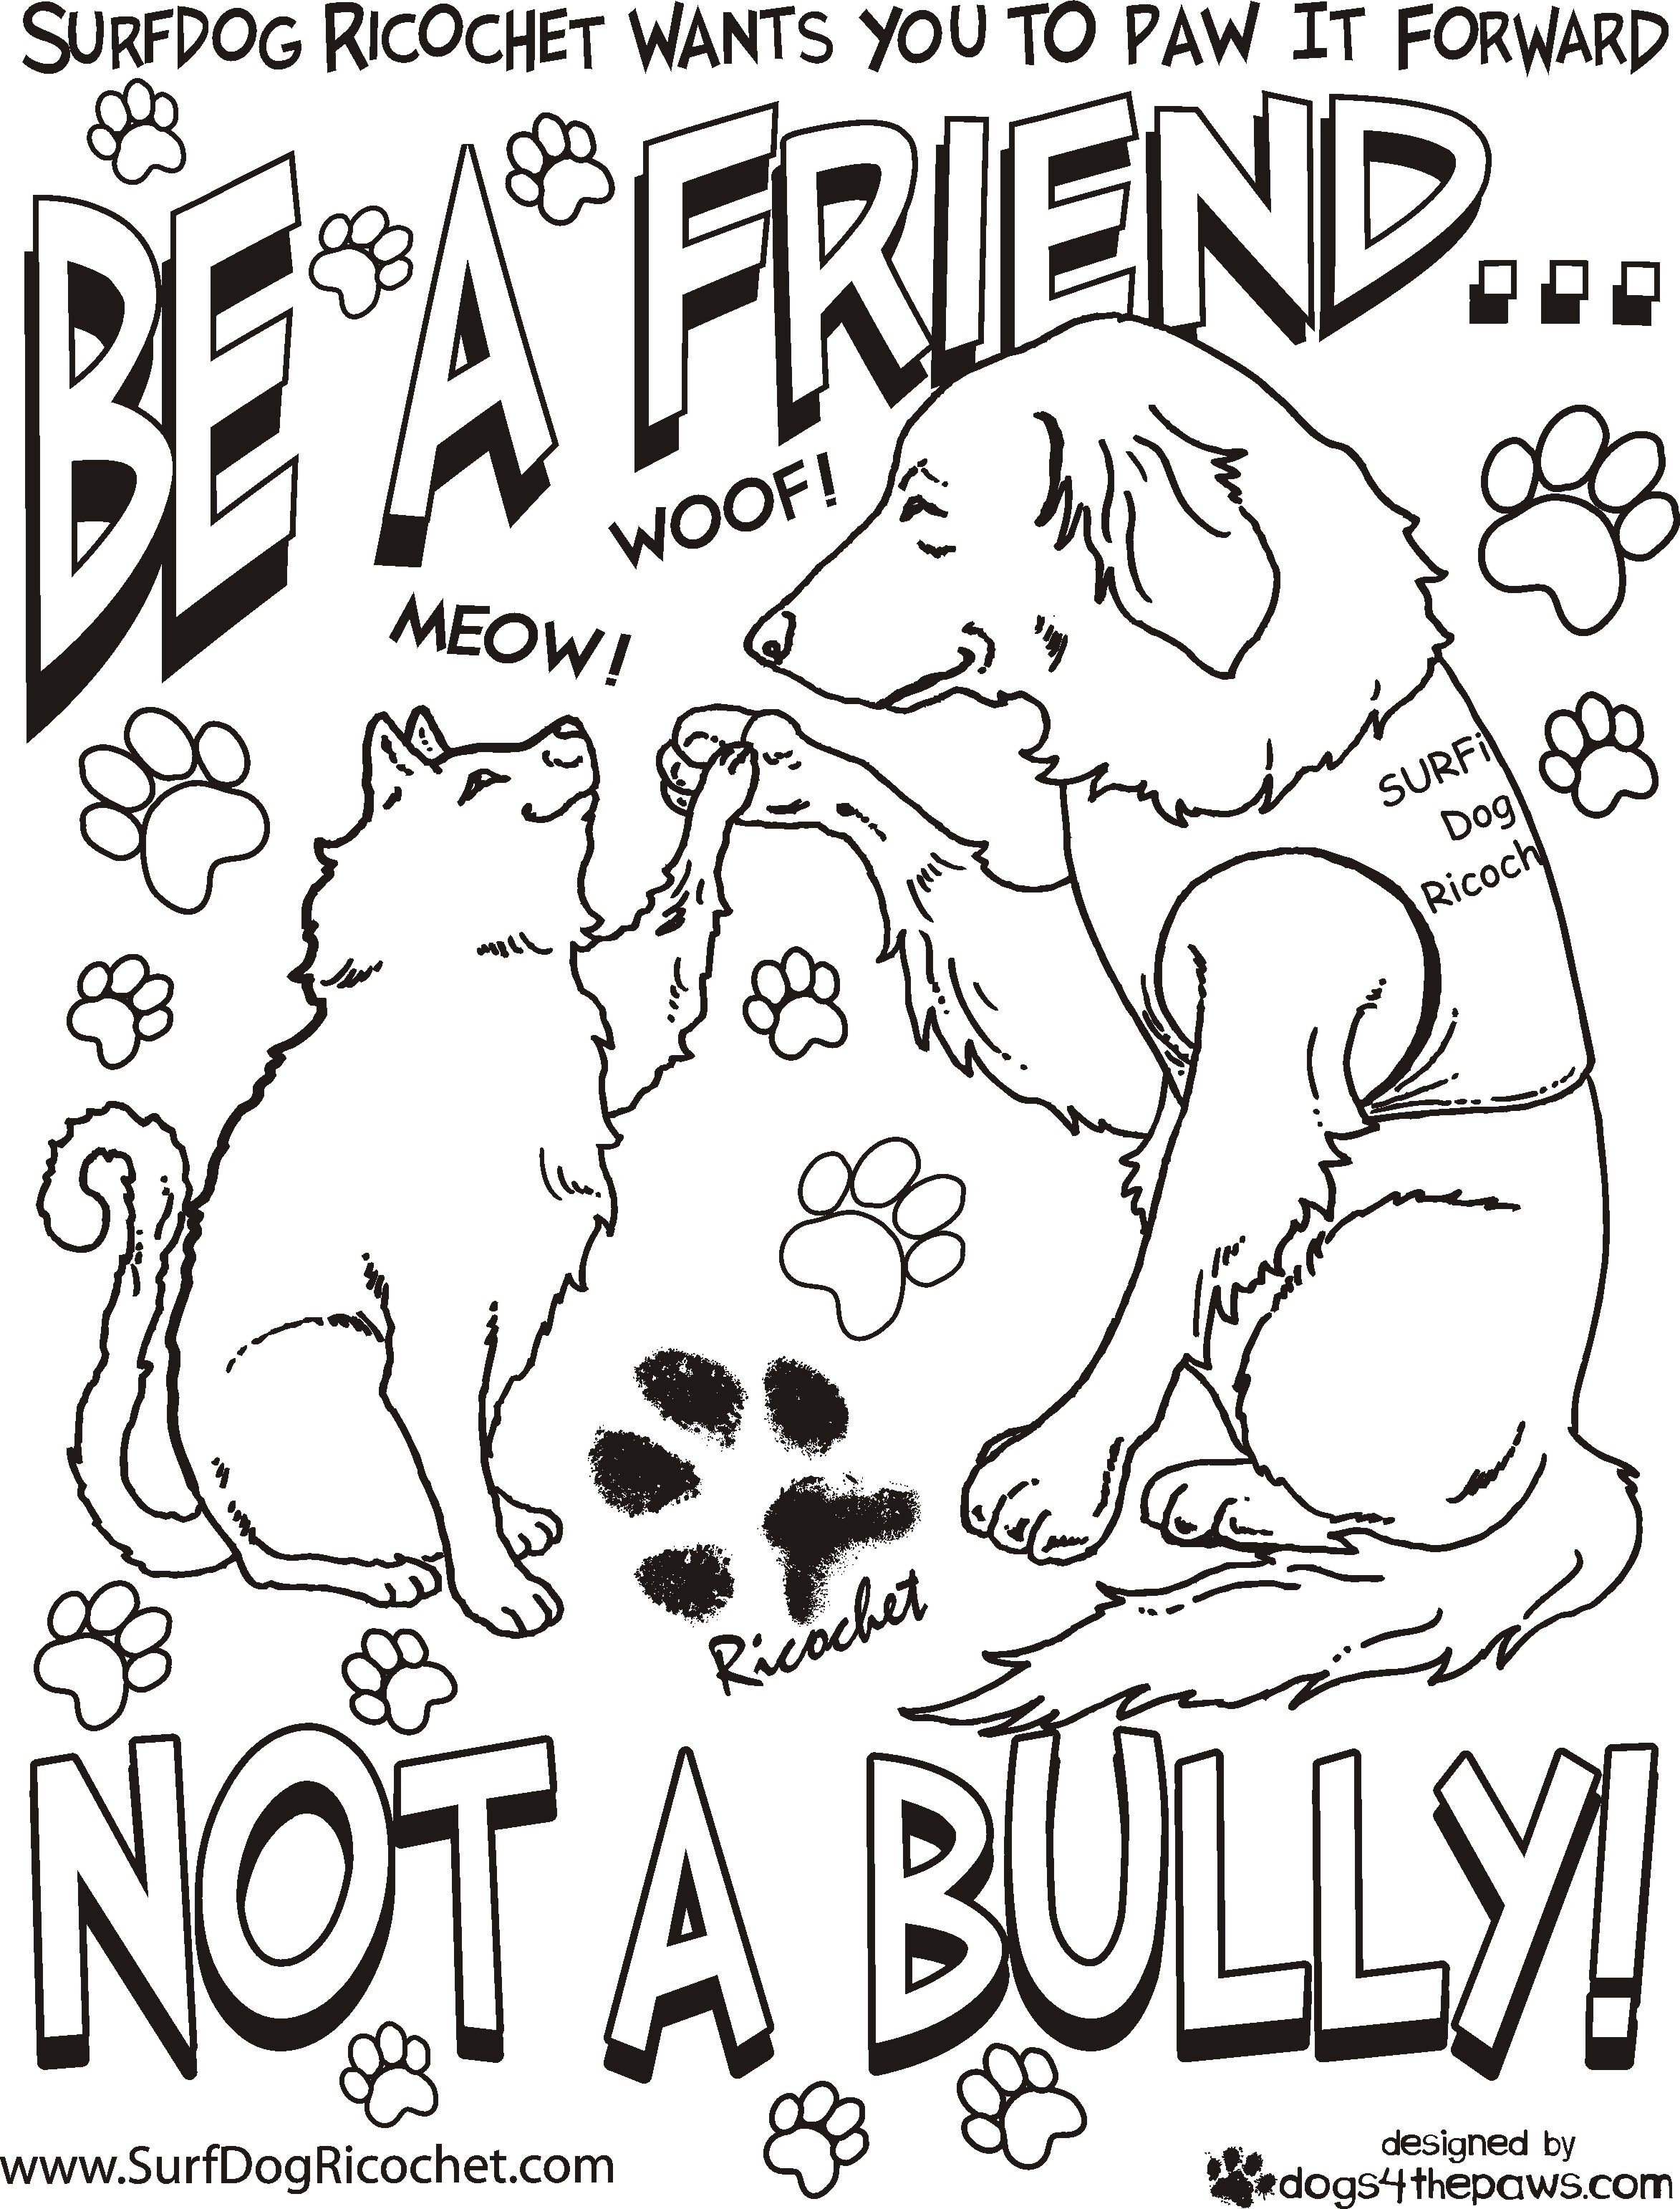 bullying coloring pages Coloring Sheet initiative for Surf Dog Ricochet | Surf Dog  bullying coloring pages